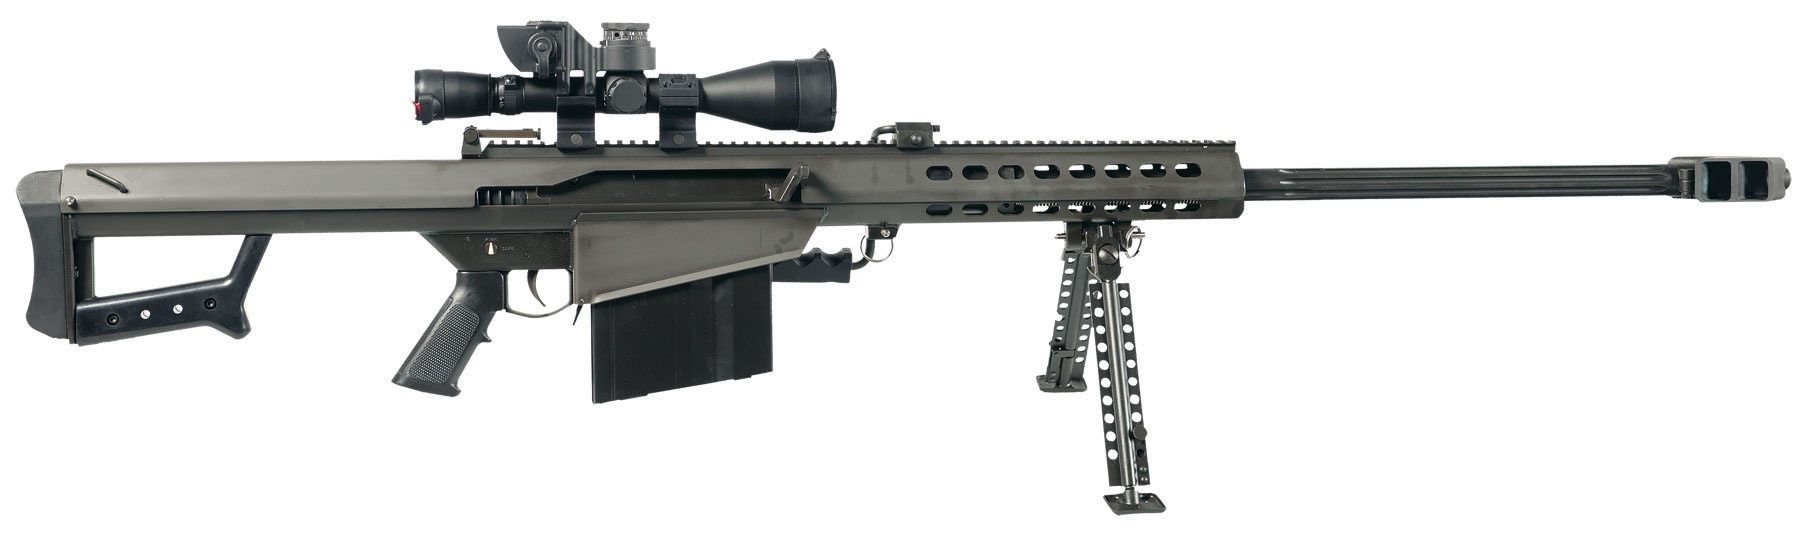 Anti Materiel Rifle what are the laws regarding civilians owning a 50 cal sniper